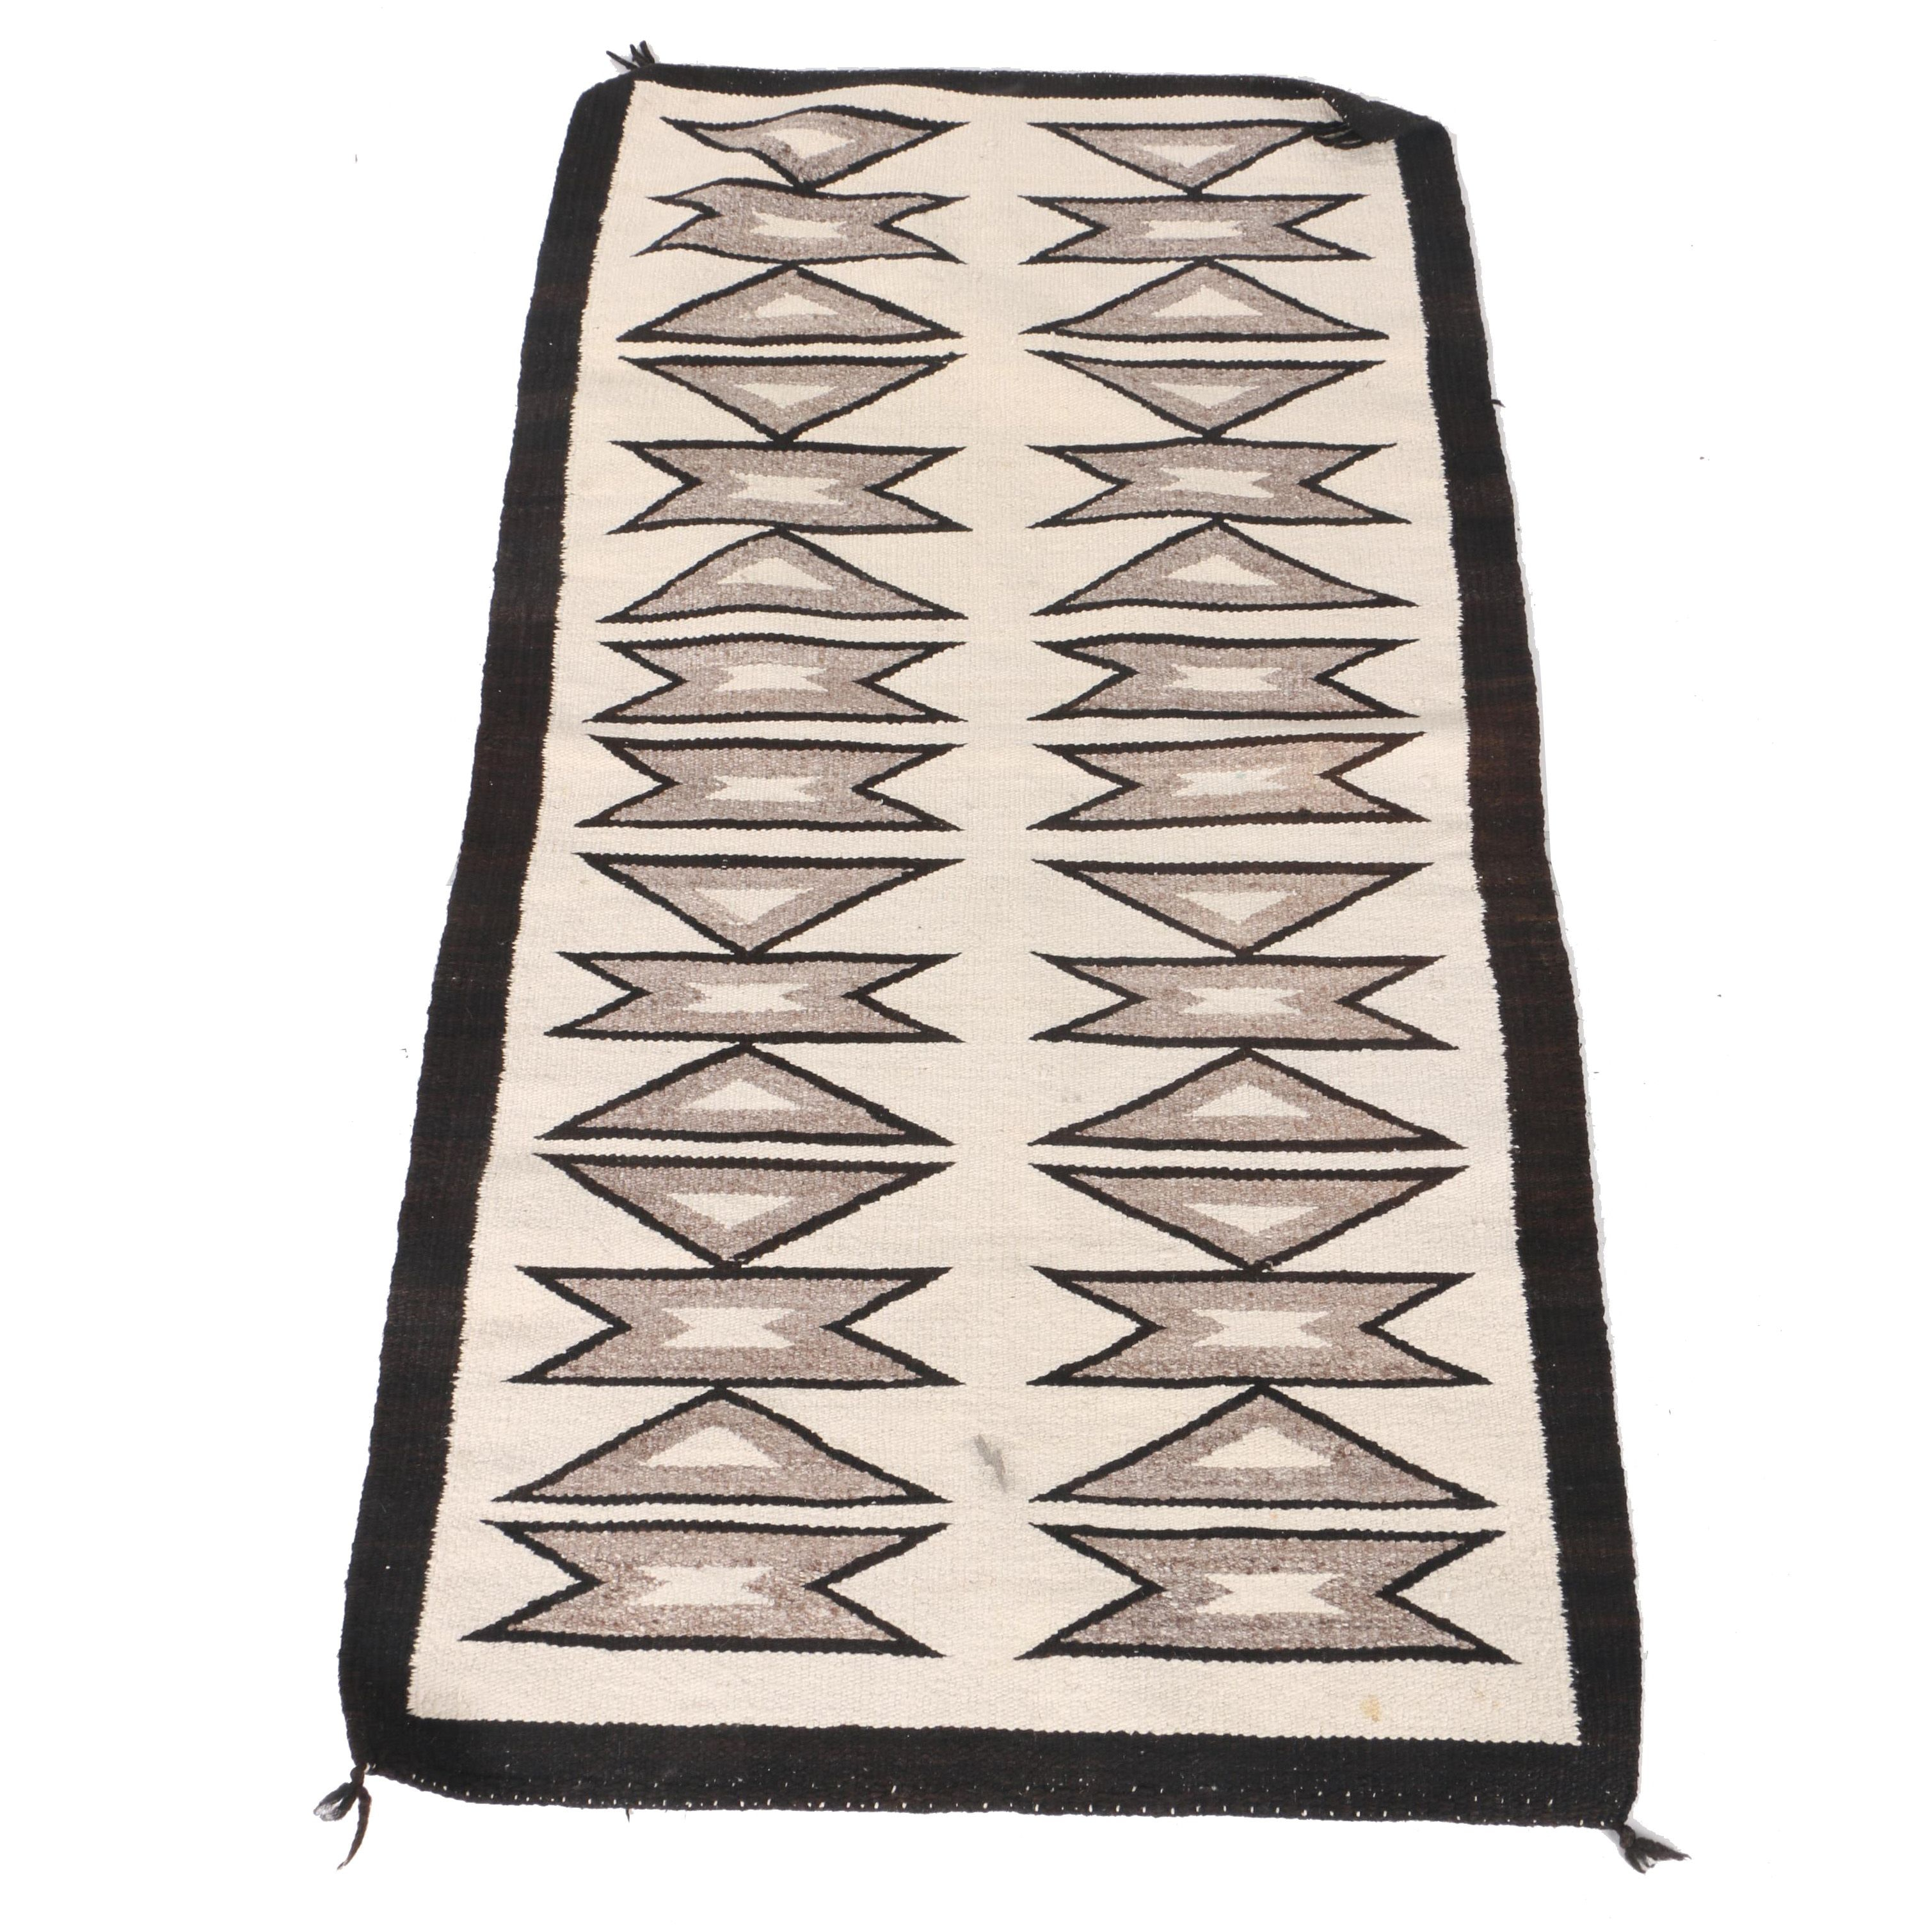 Handwoven Native American-Style Saddle Blanket